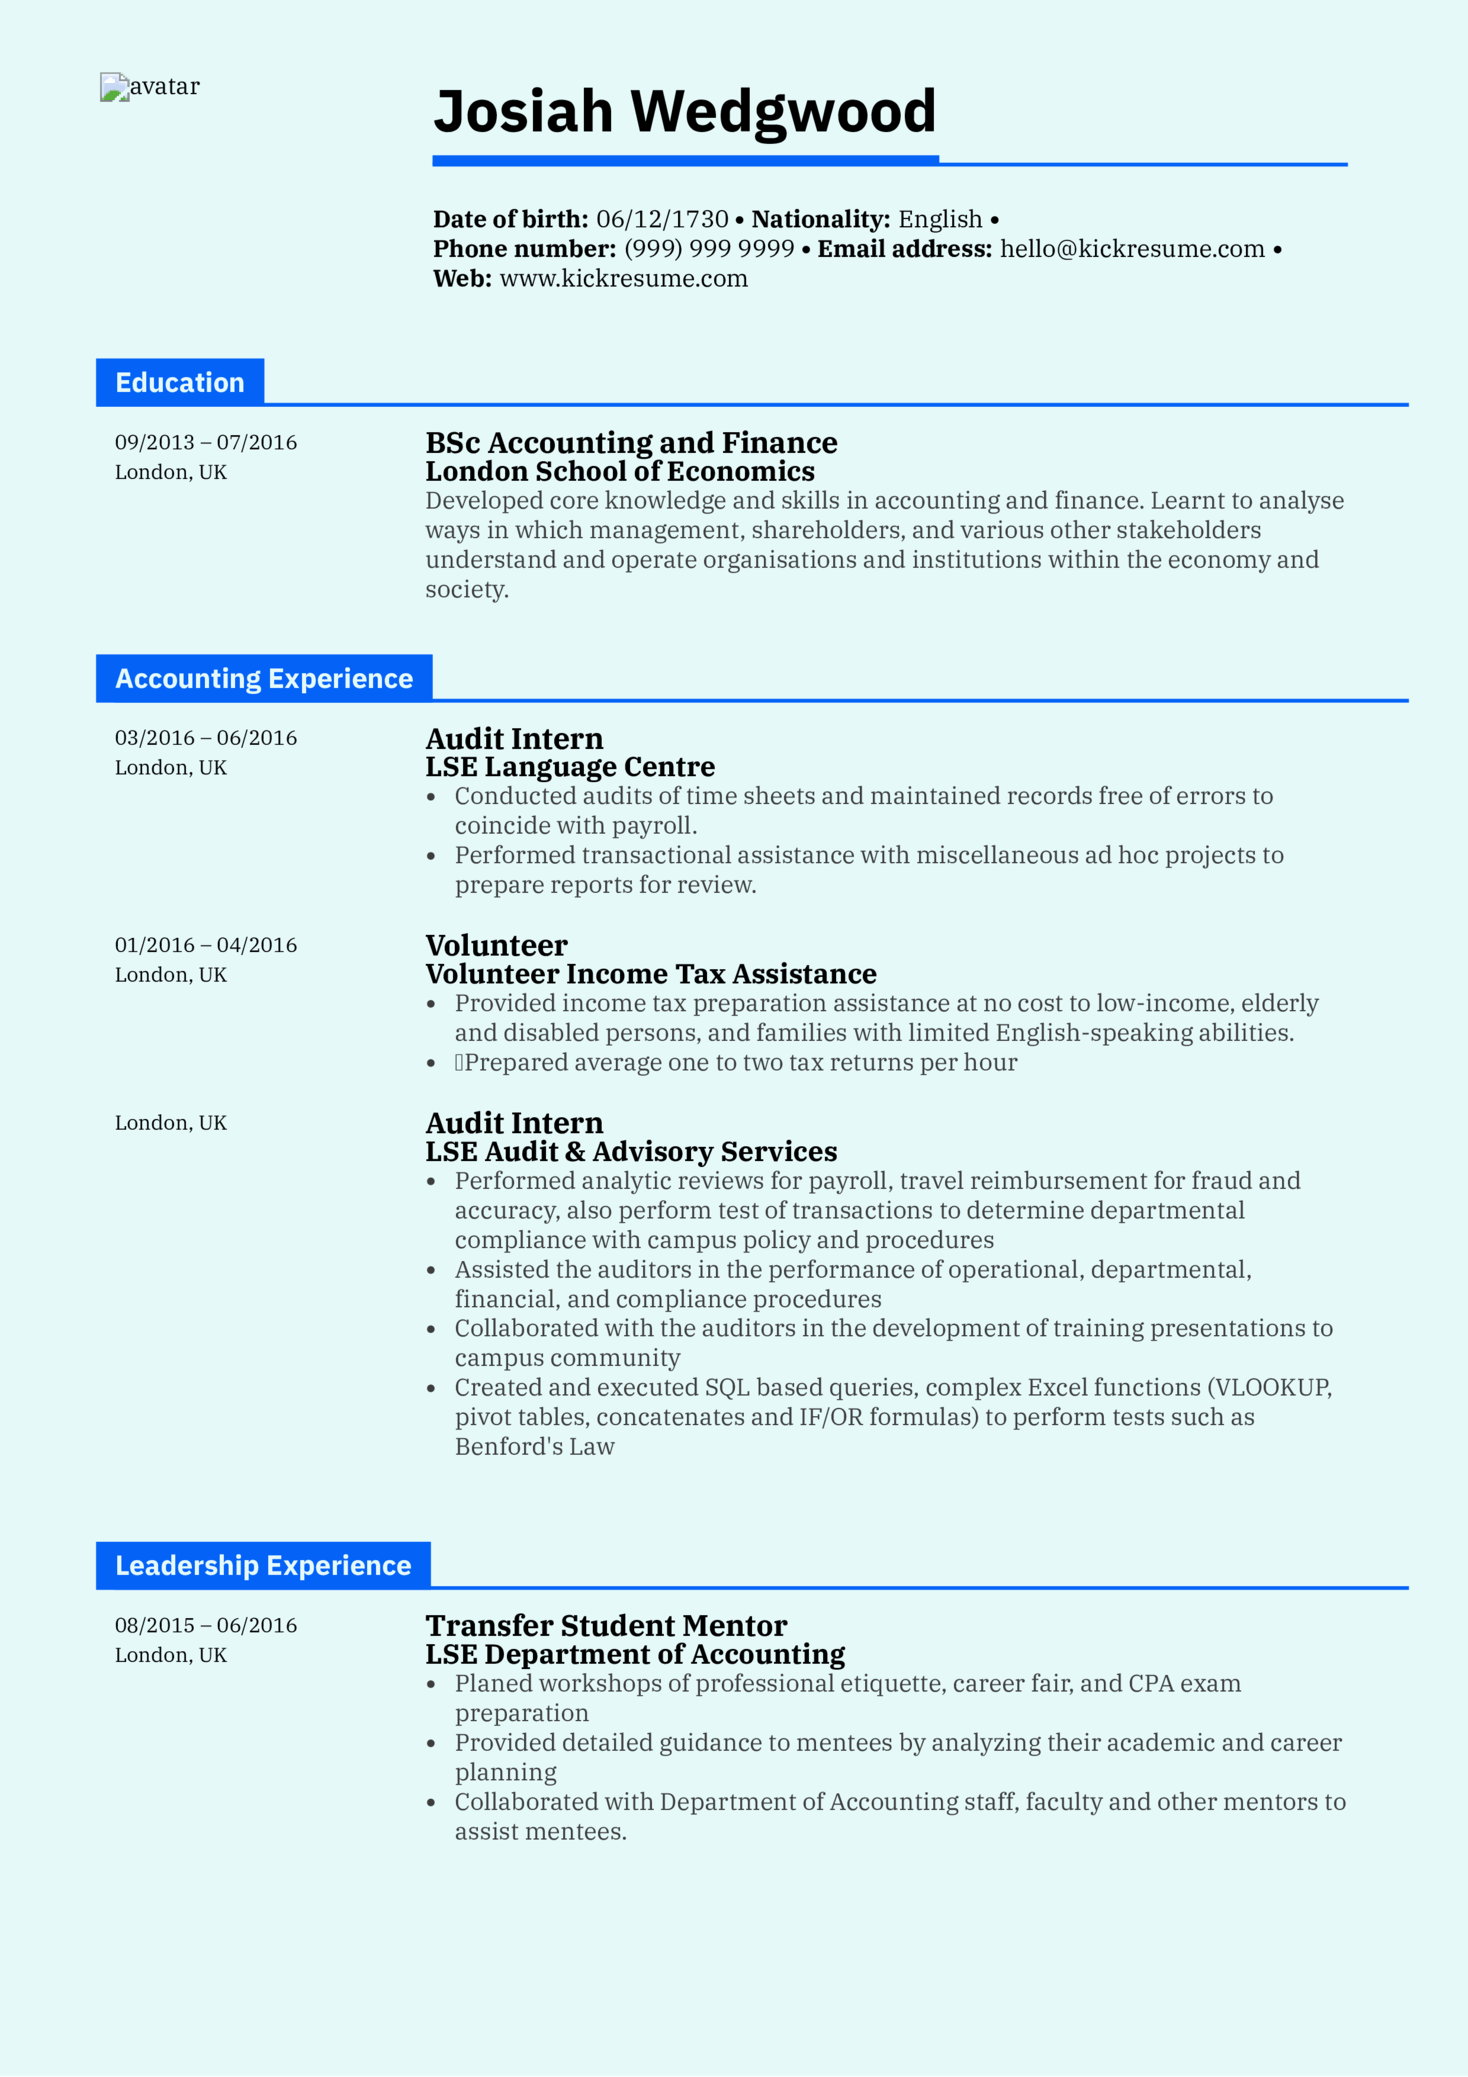 Graduate Accountant Resume Sample  Resume Samples  Career Help Center